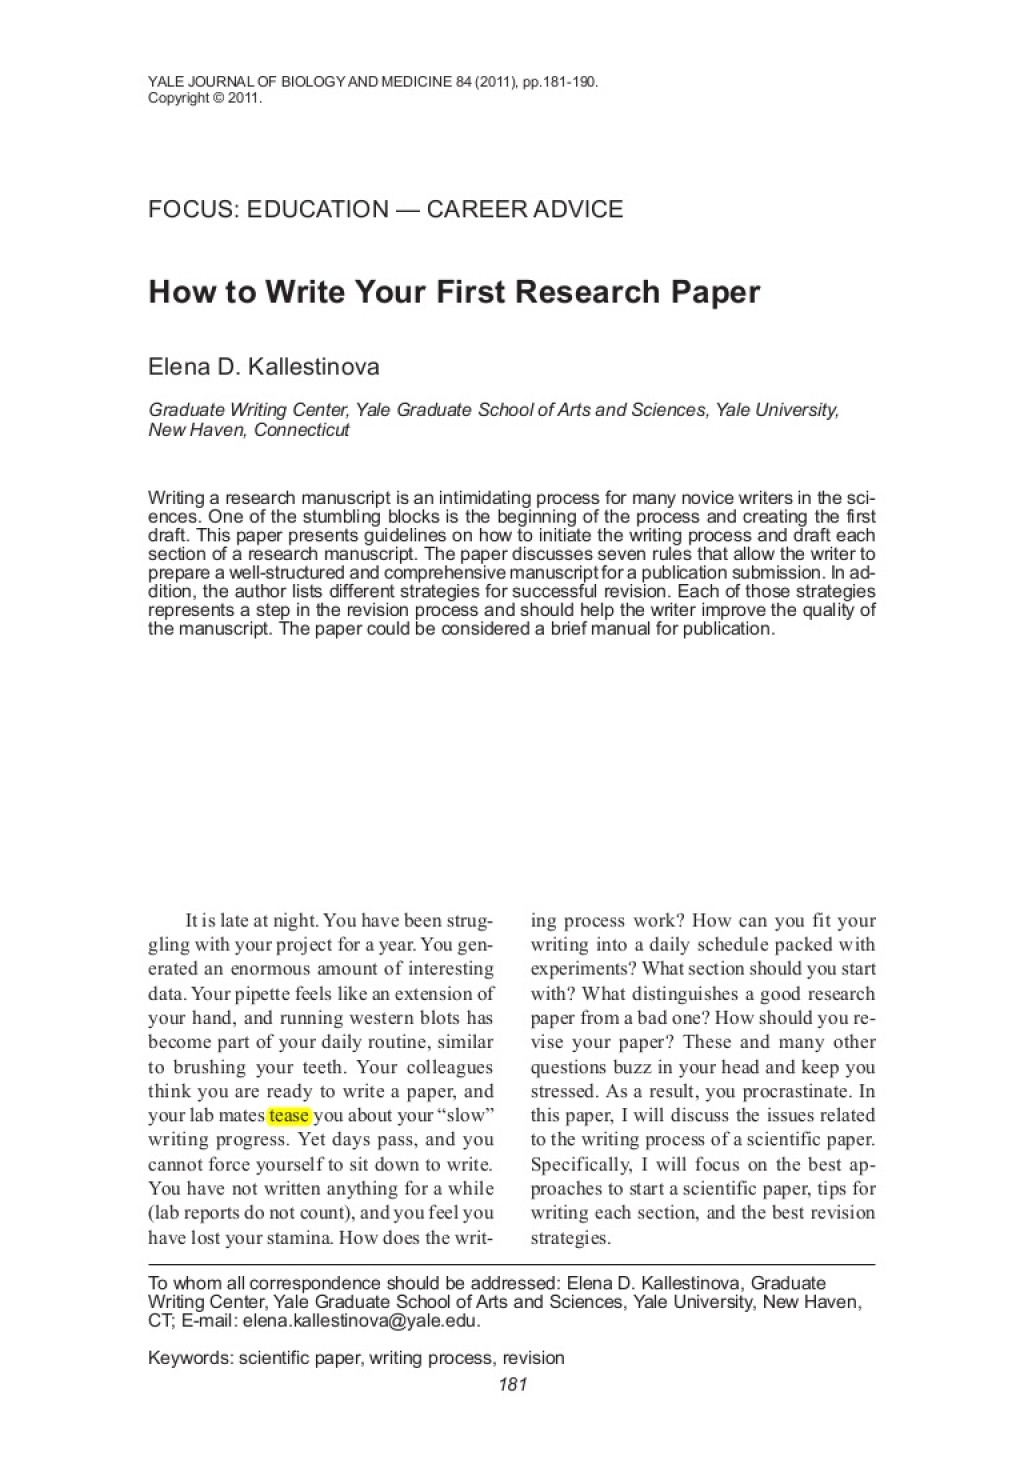 008 Research Paper How To Write Papers Howtowriteyourfirstresearchpaper Lva1 App6891 Thumbnail Outstanding A Proposal In Apa Format Do I Conclusion For Outline Large